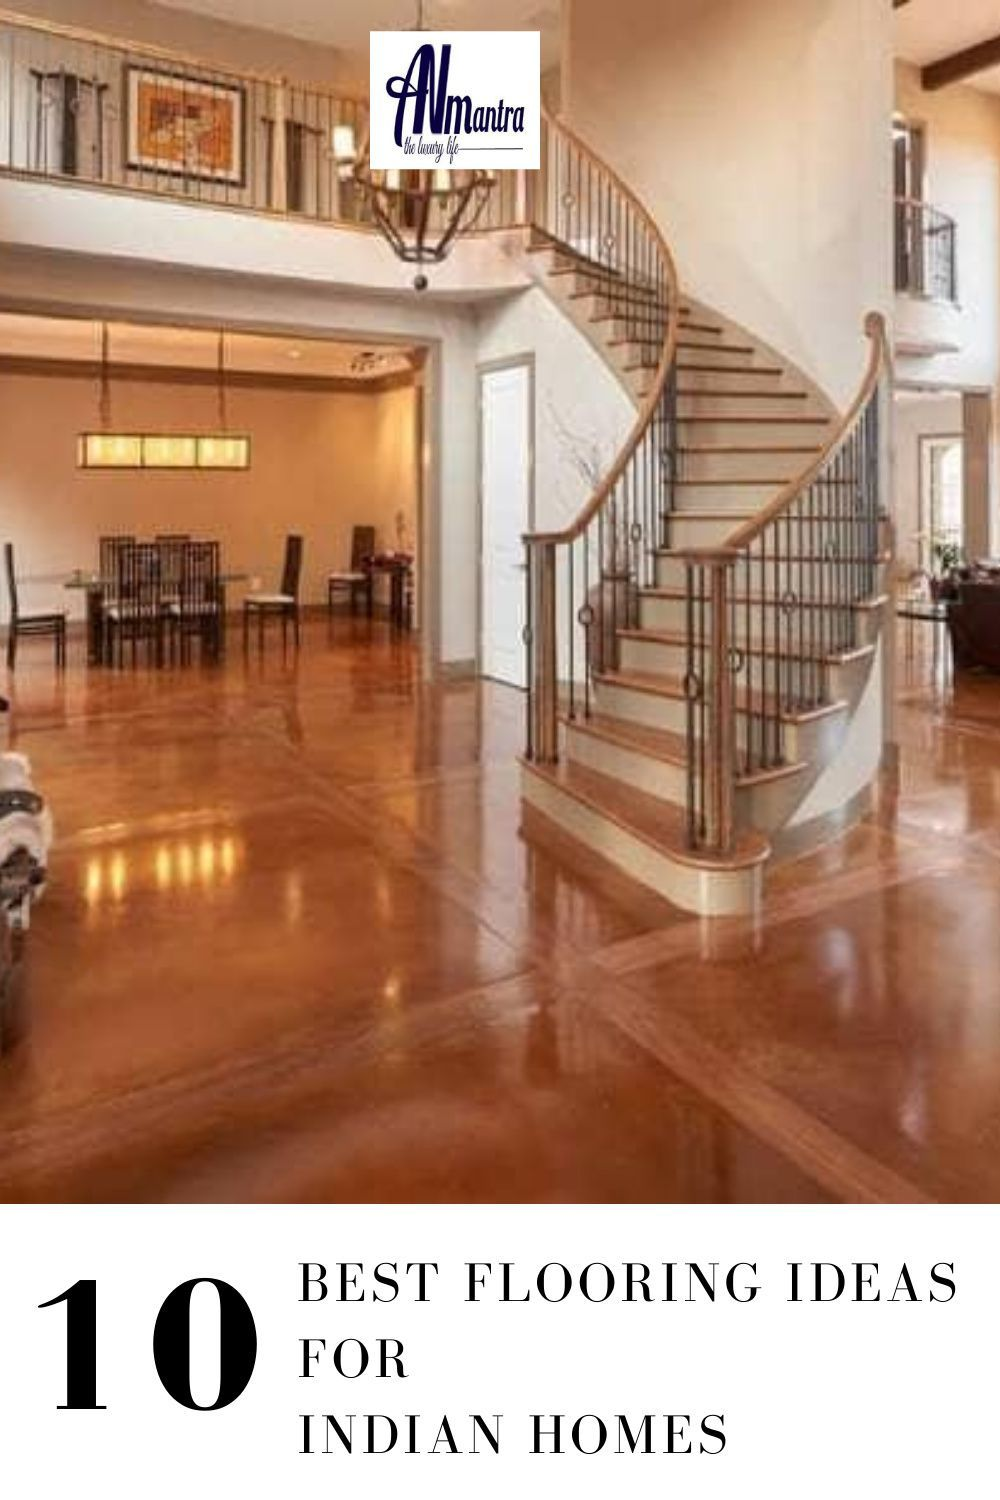 Best 10 Flooring Ideas For Indian Homes in 2020 Indian